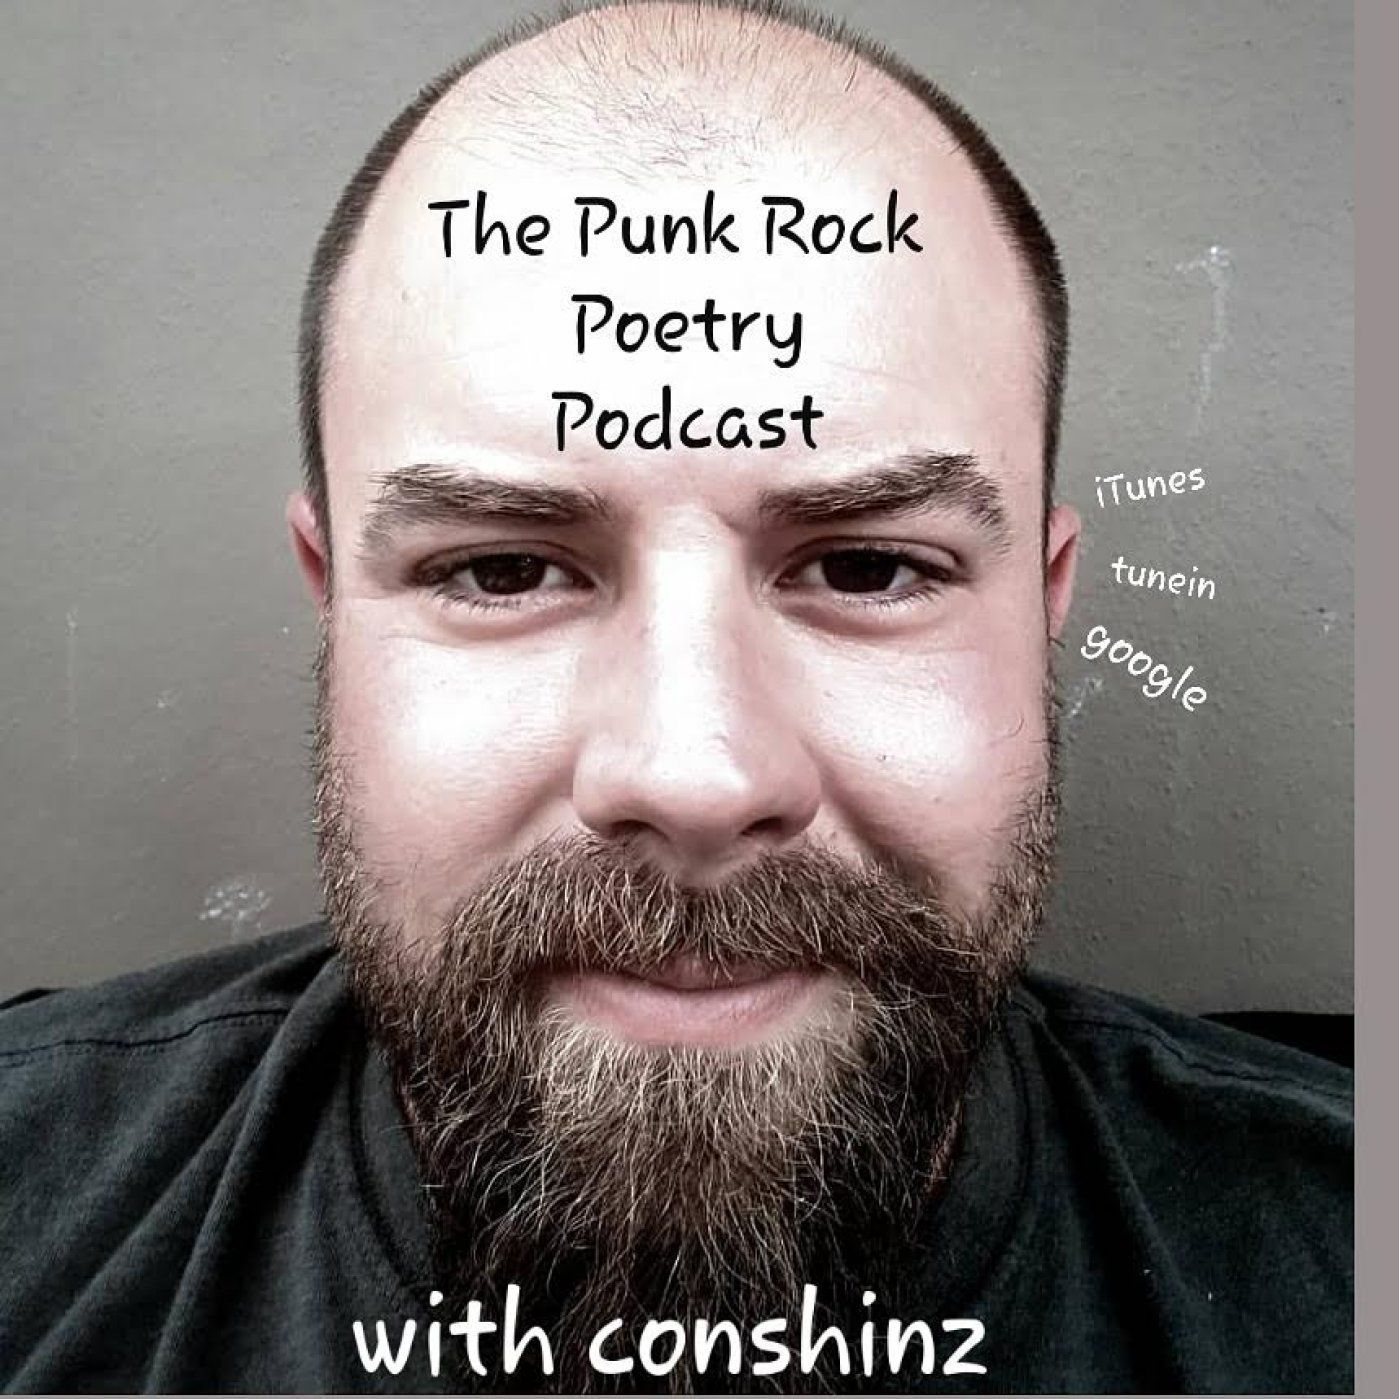 The Punk Rock Poetry Podcast - Hip Hop Night 09 29 1019